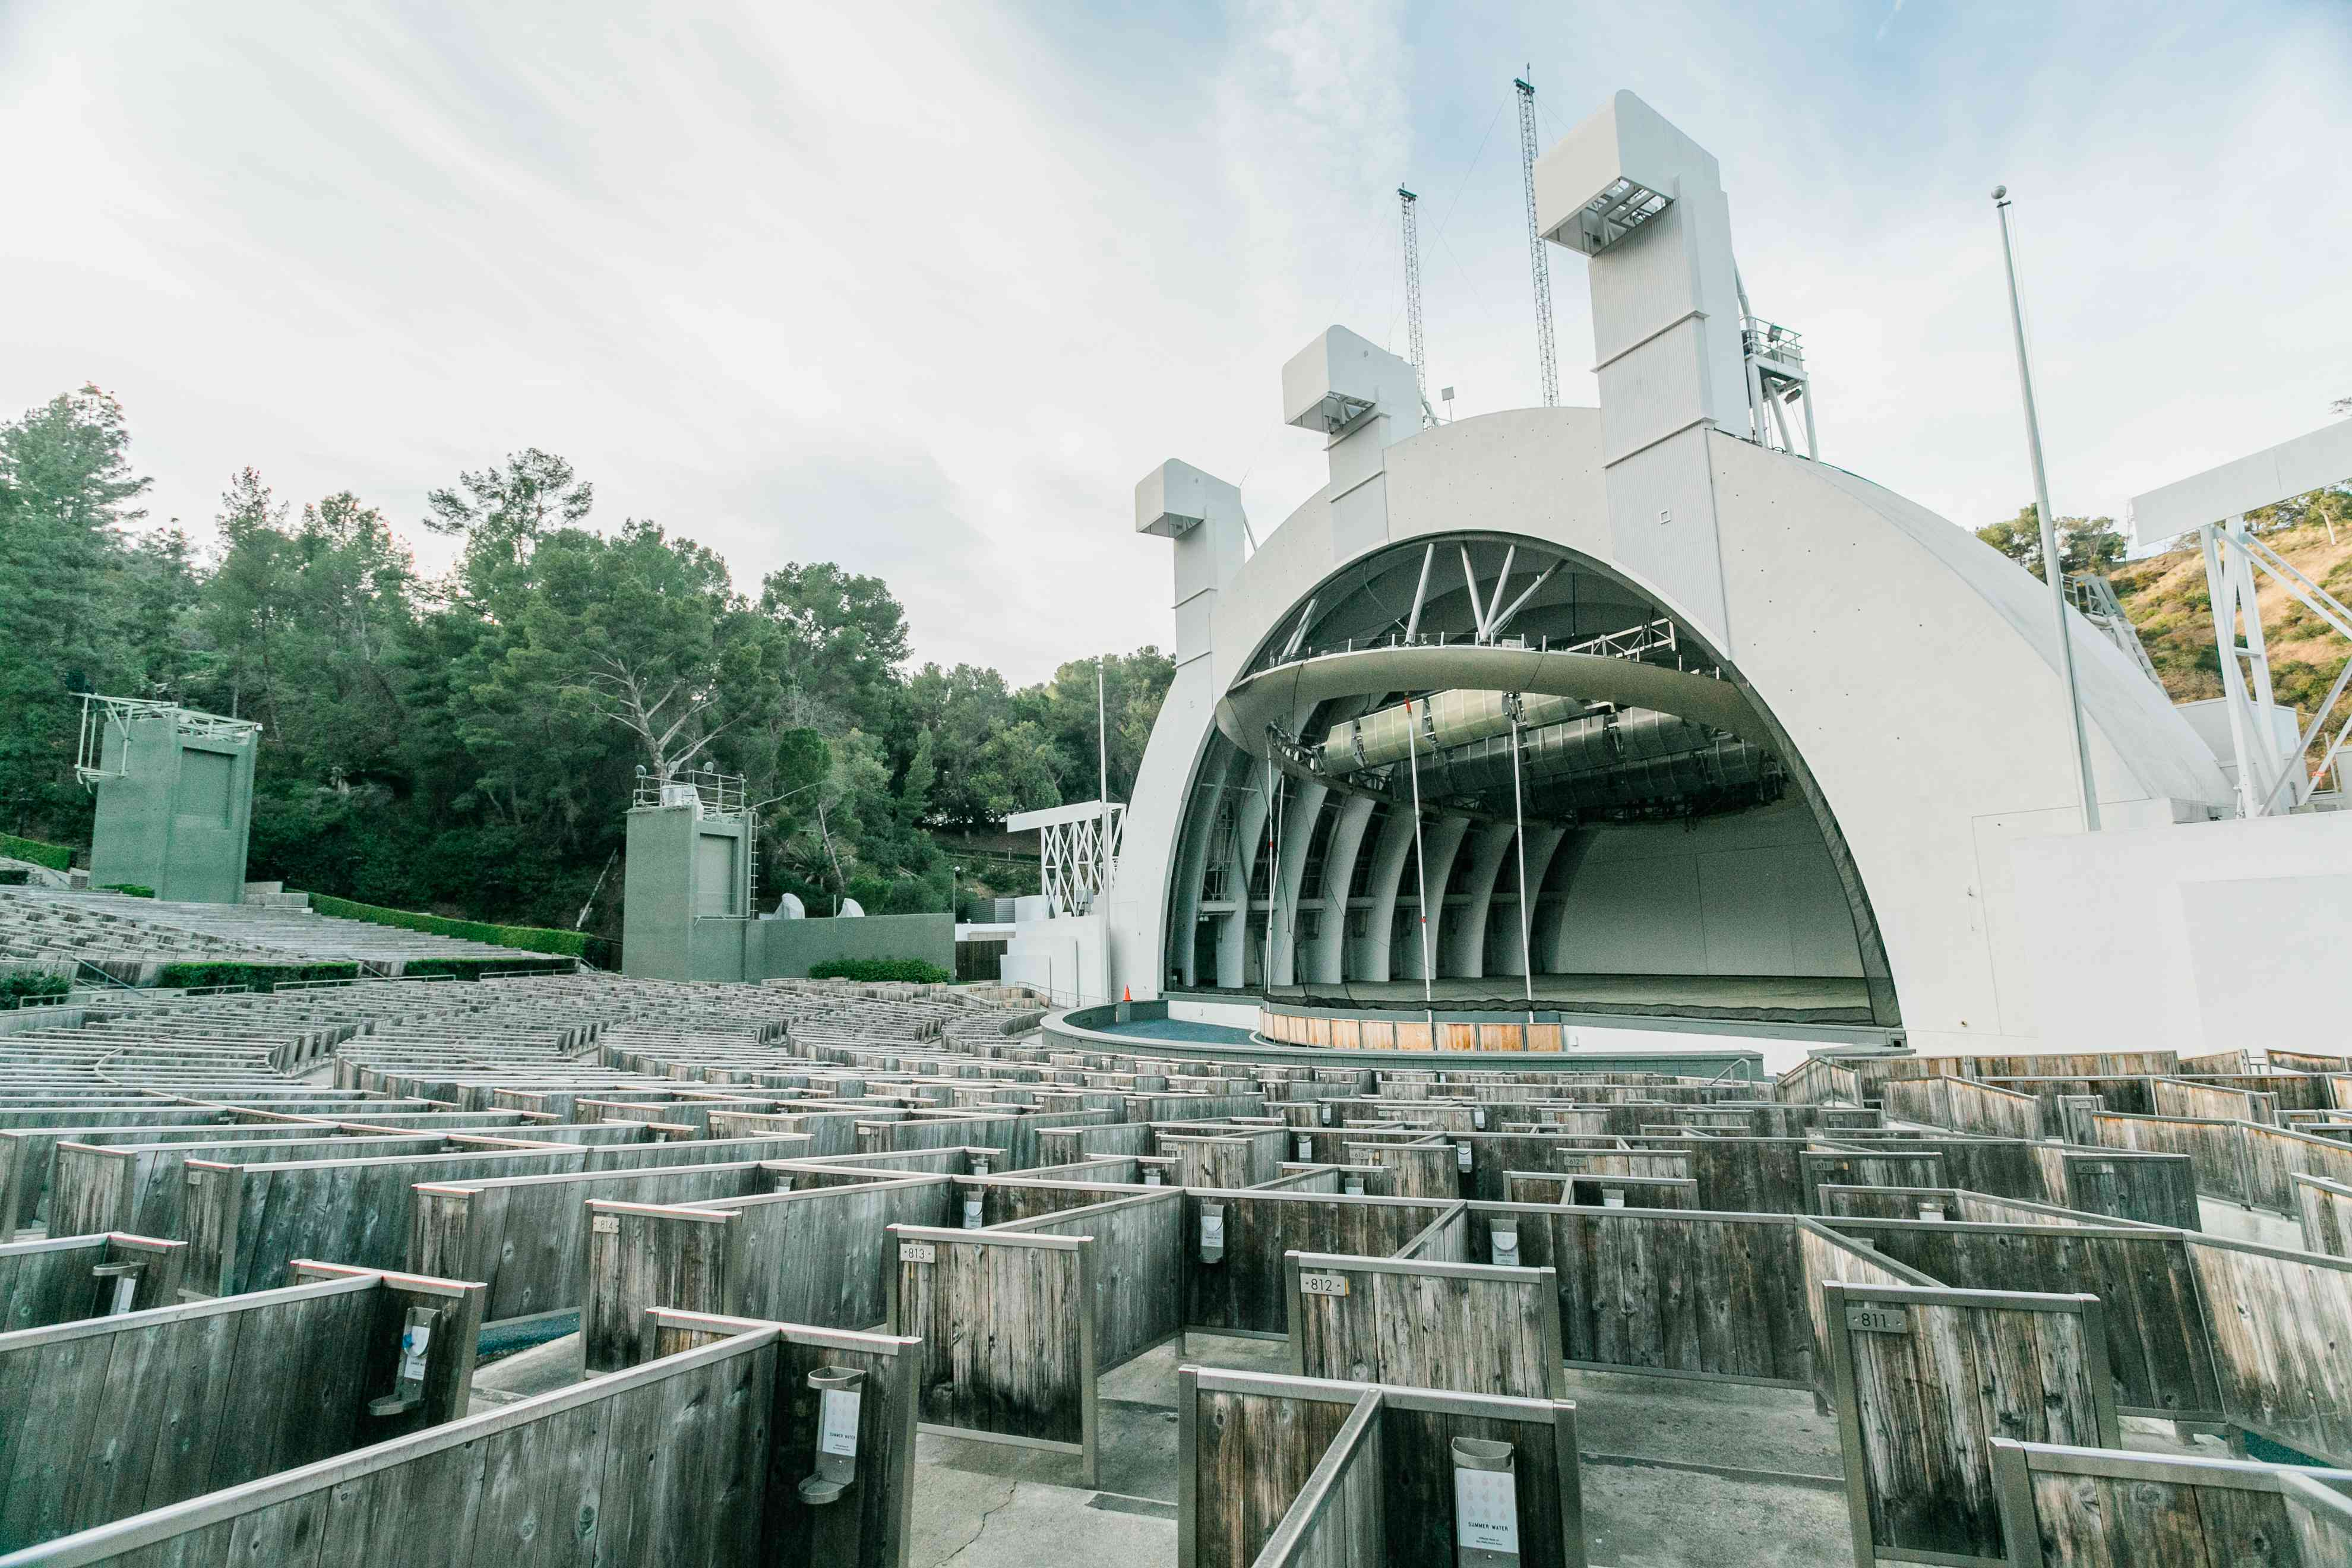 The Hollywood Bowl in LA